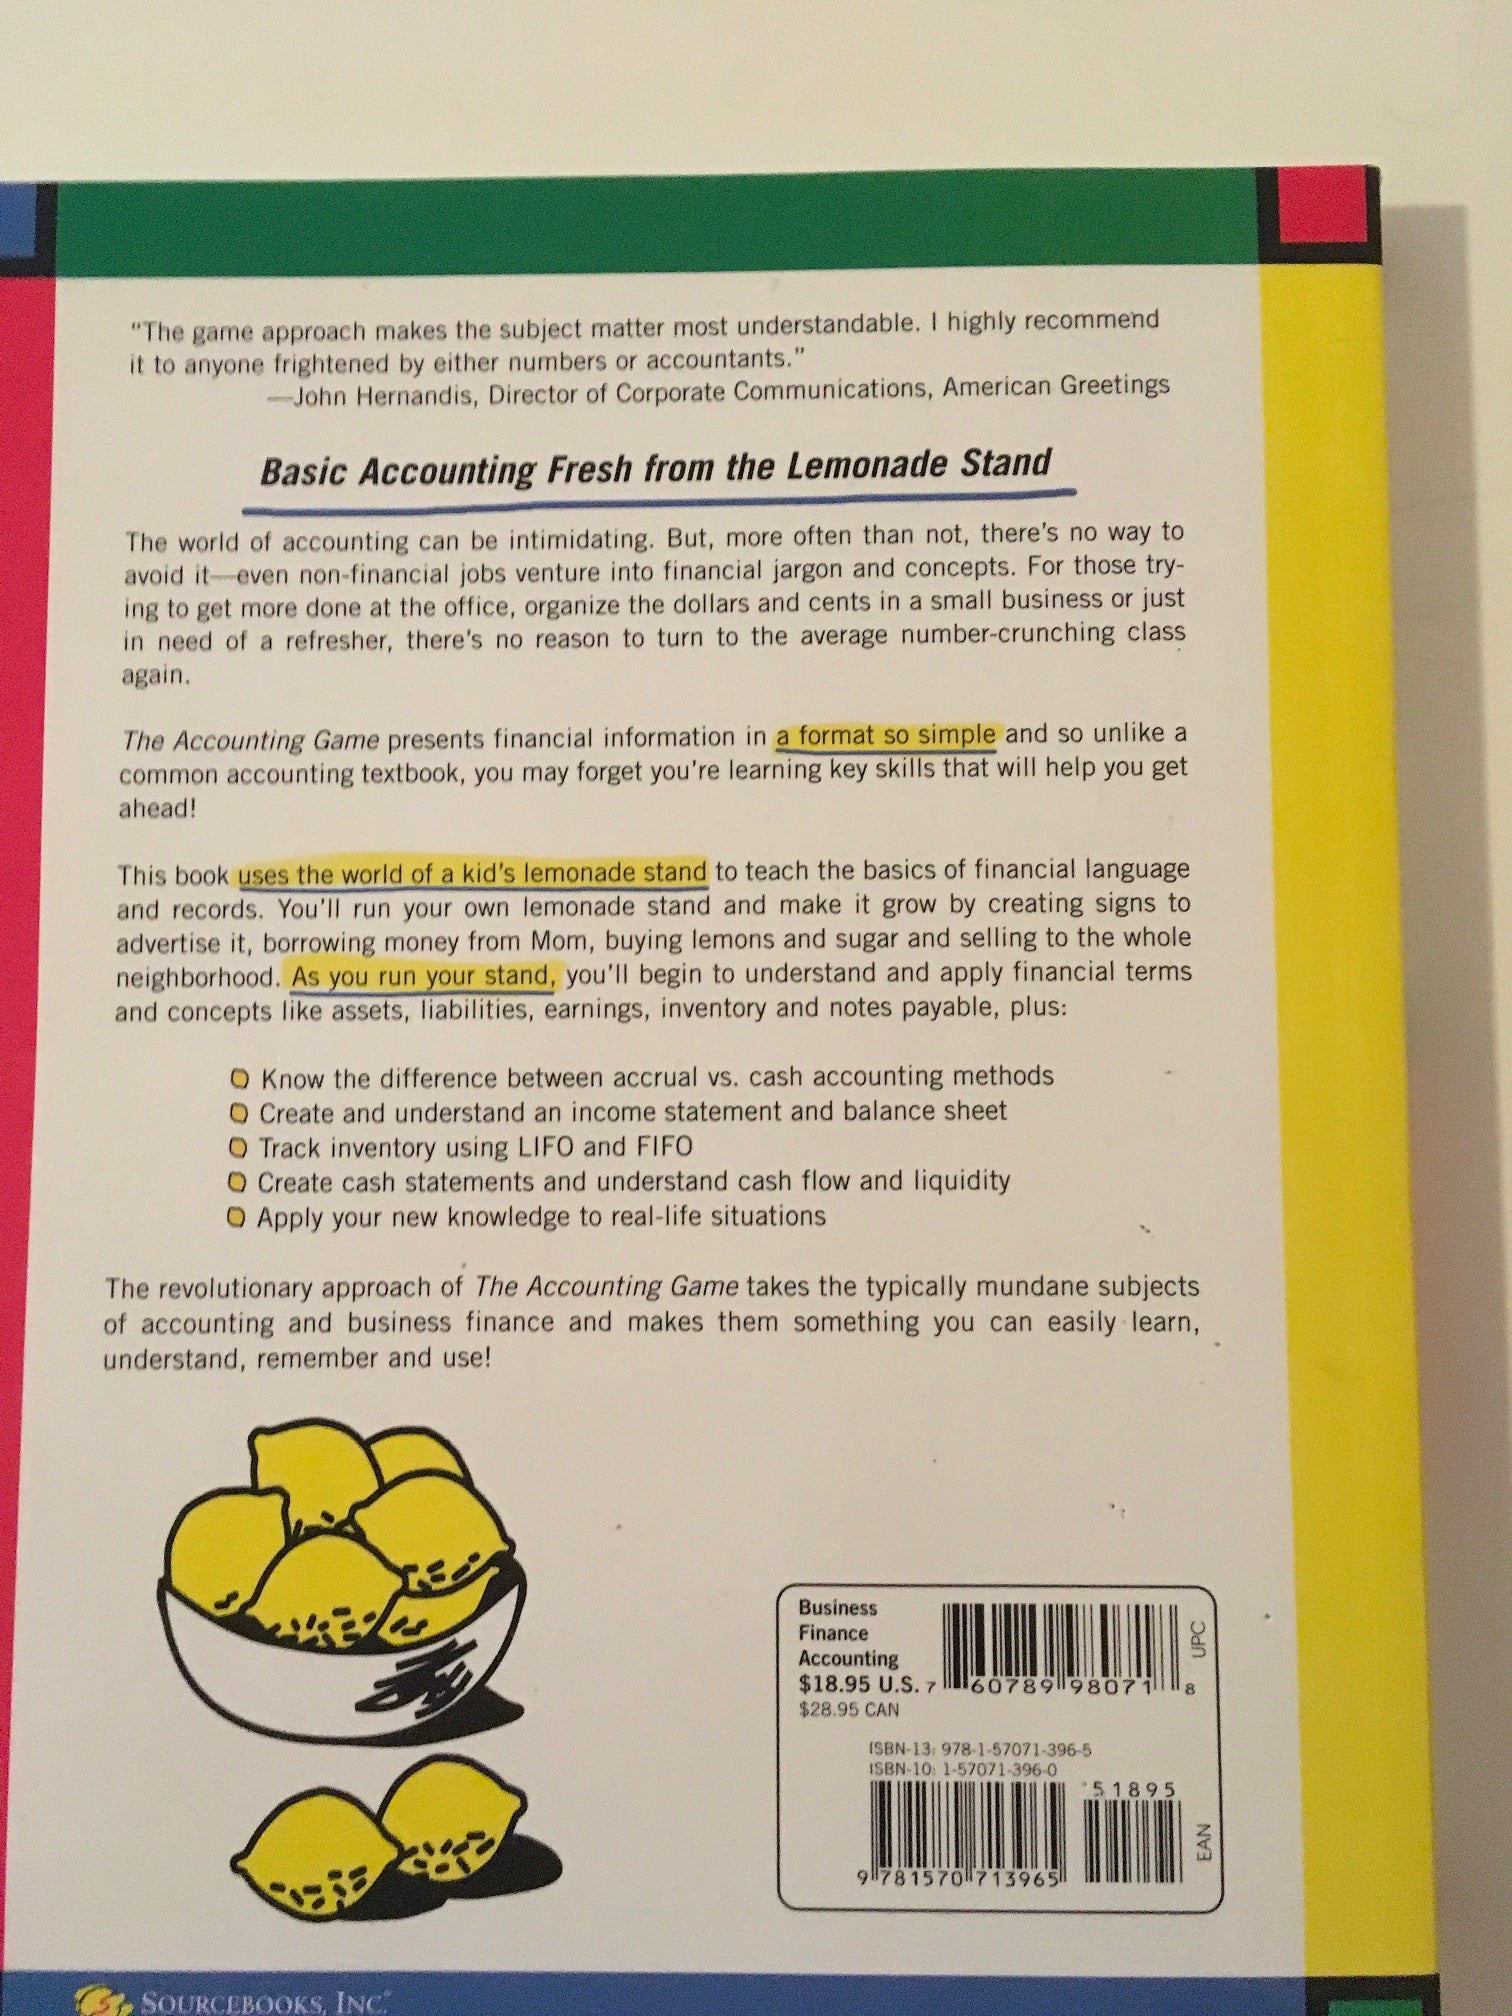 The Accounting Game Paperback Book 1998 Darrell Mullis And Judith Orl